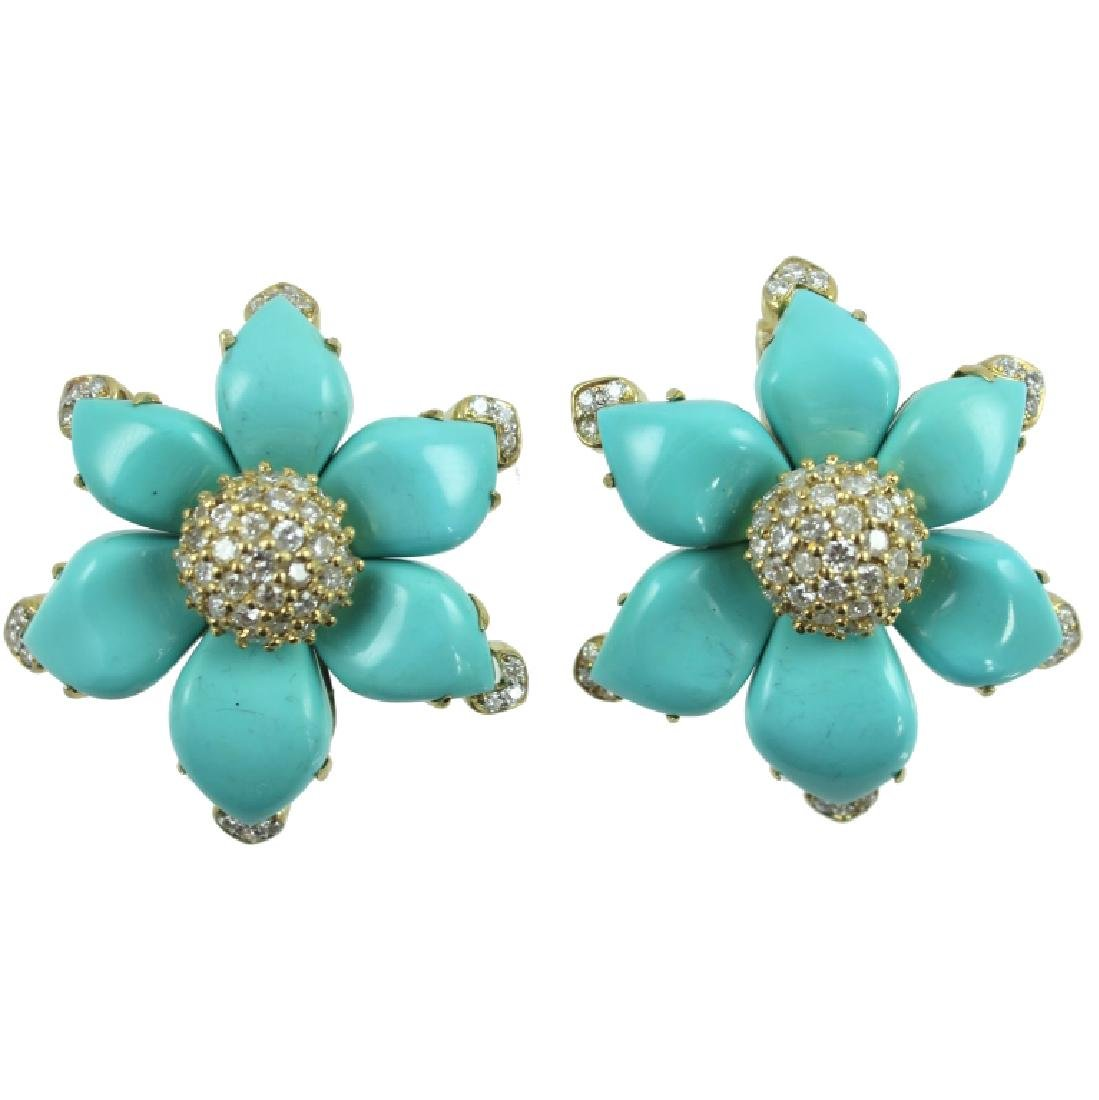 PAIR 18K TURQUOISE & DIAMOND EARRINGS